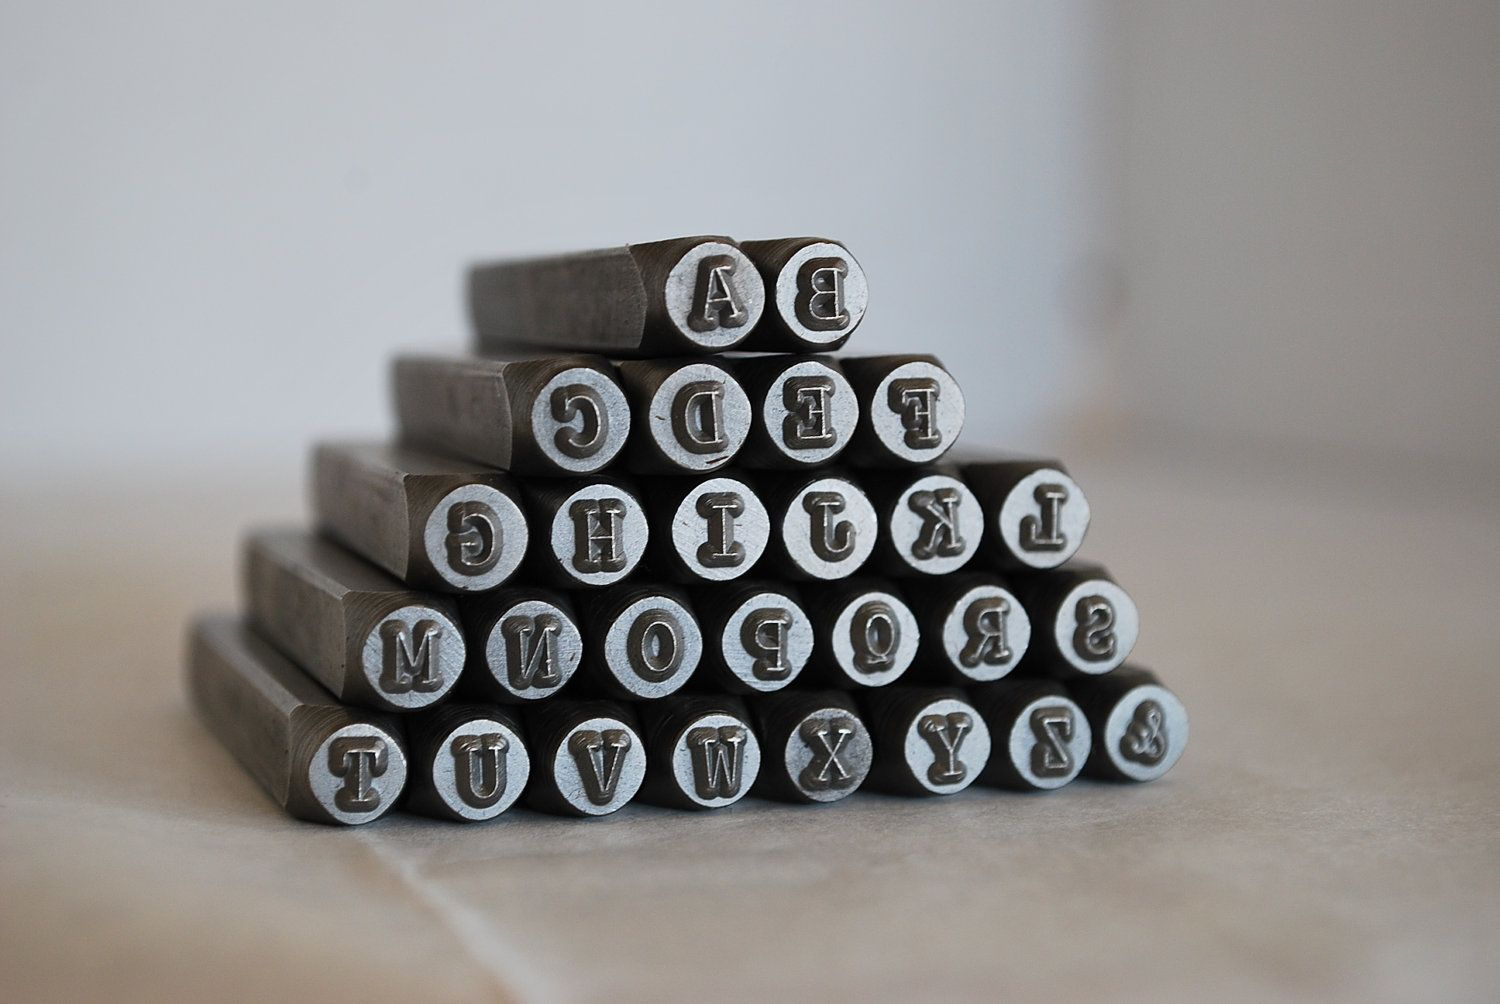 Tin Letters And Numbers 3 Mmuppercase Typewriter Font Alphabet Letter Stamp Setmetal